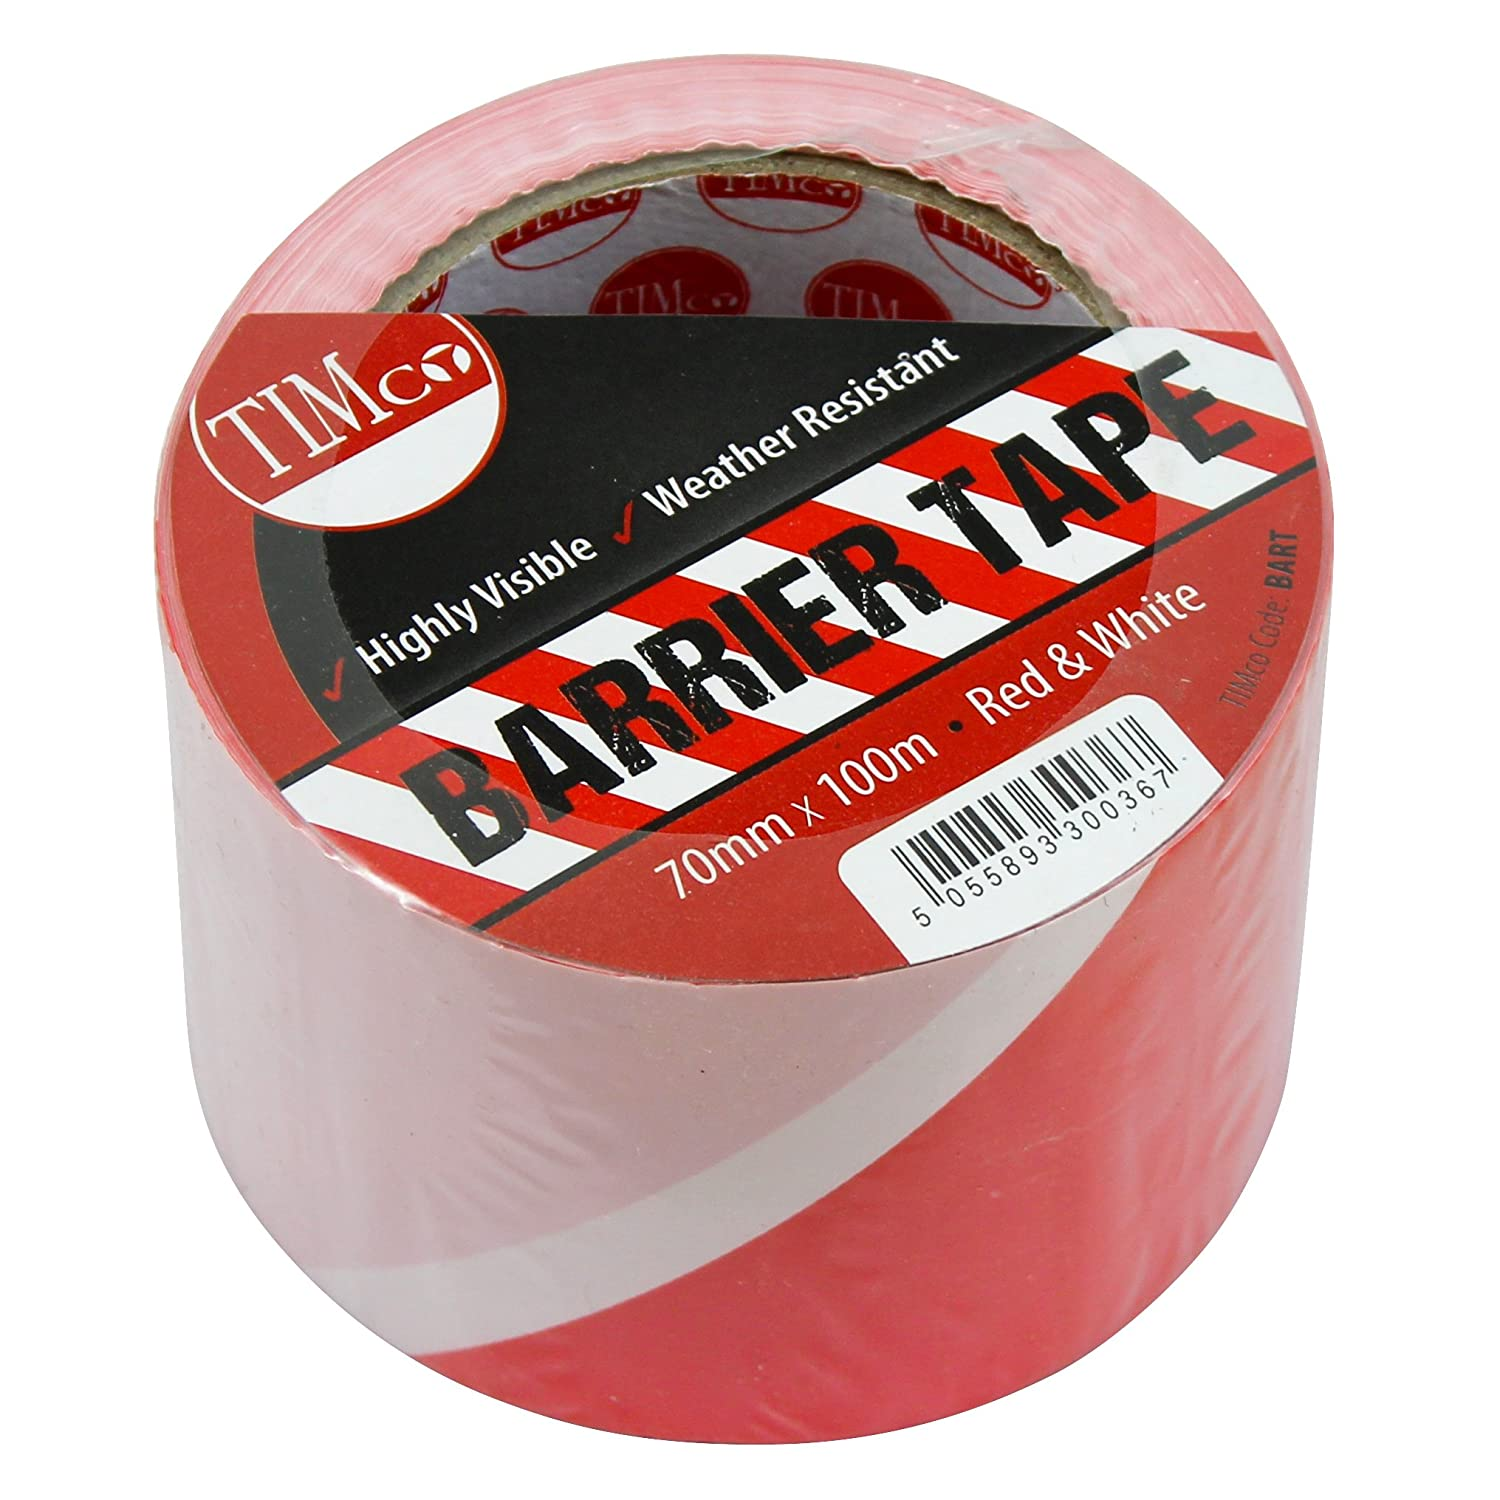 TIMco BART PVC Barrier Tape 70mm x 100m - Red/White